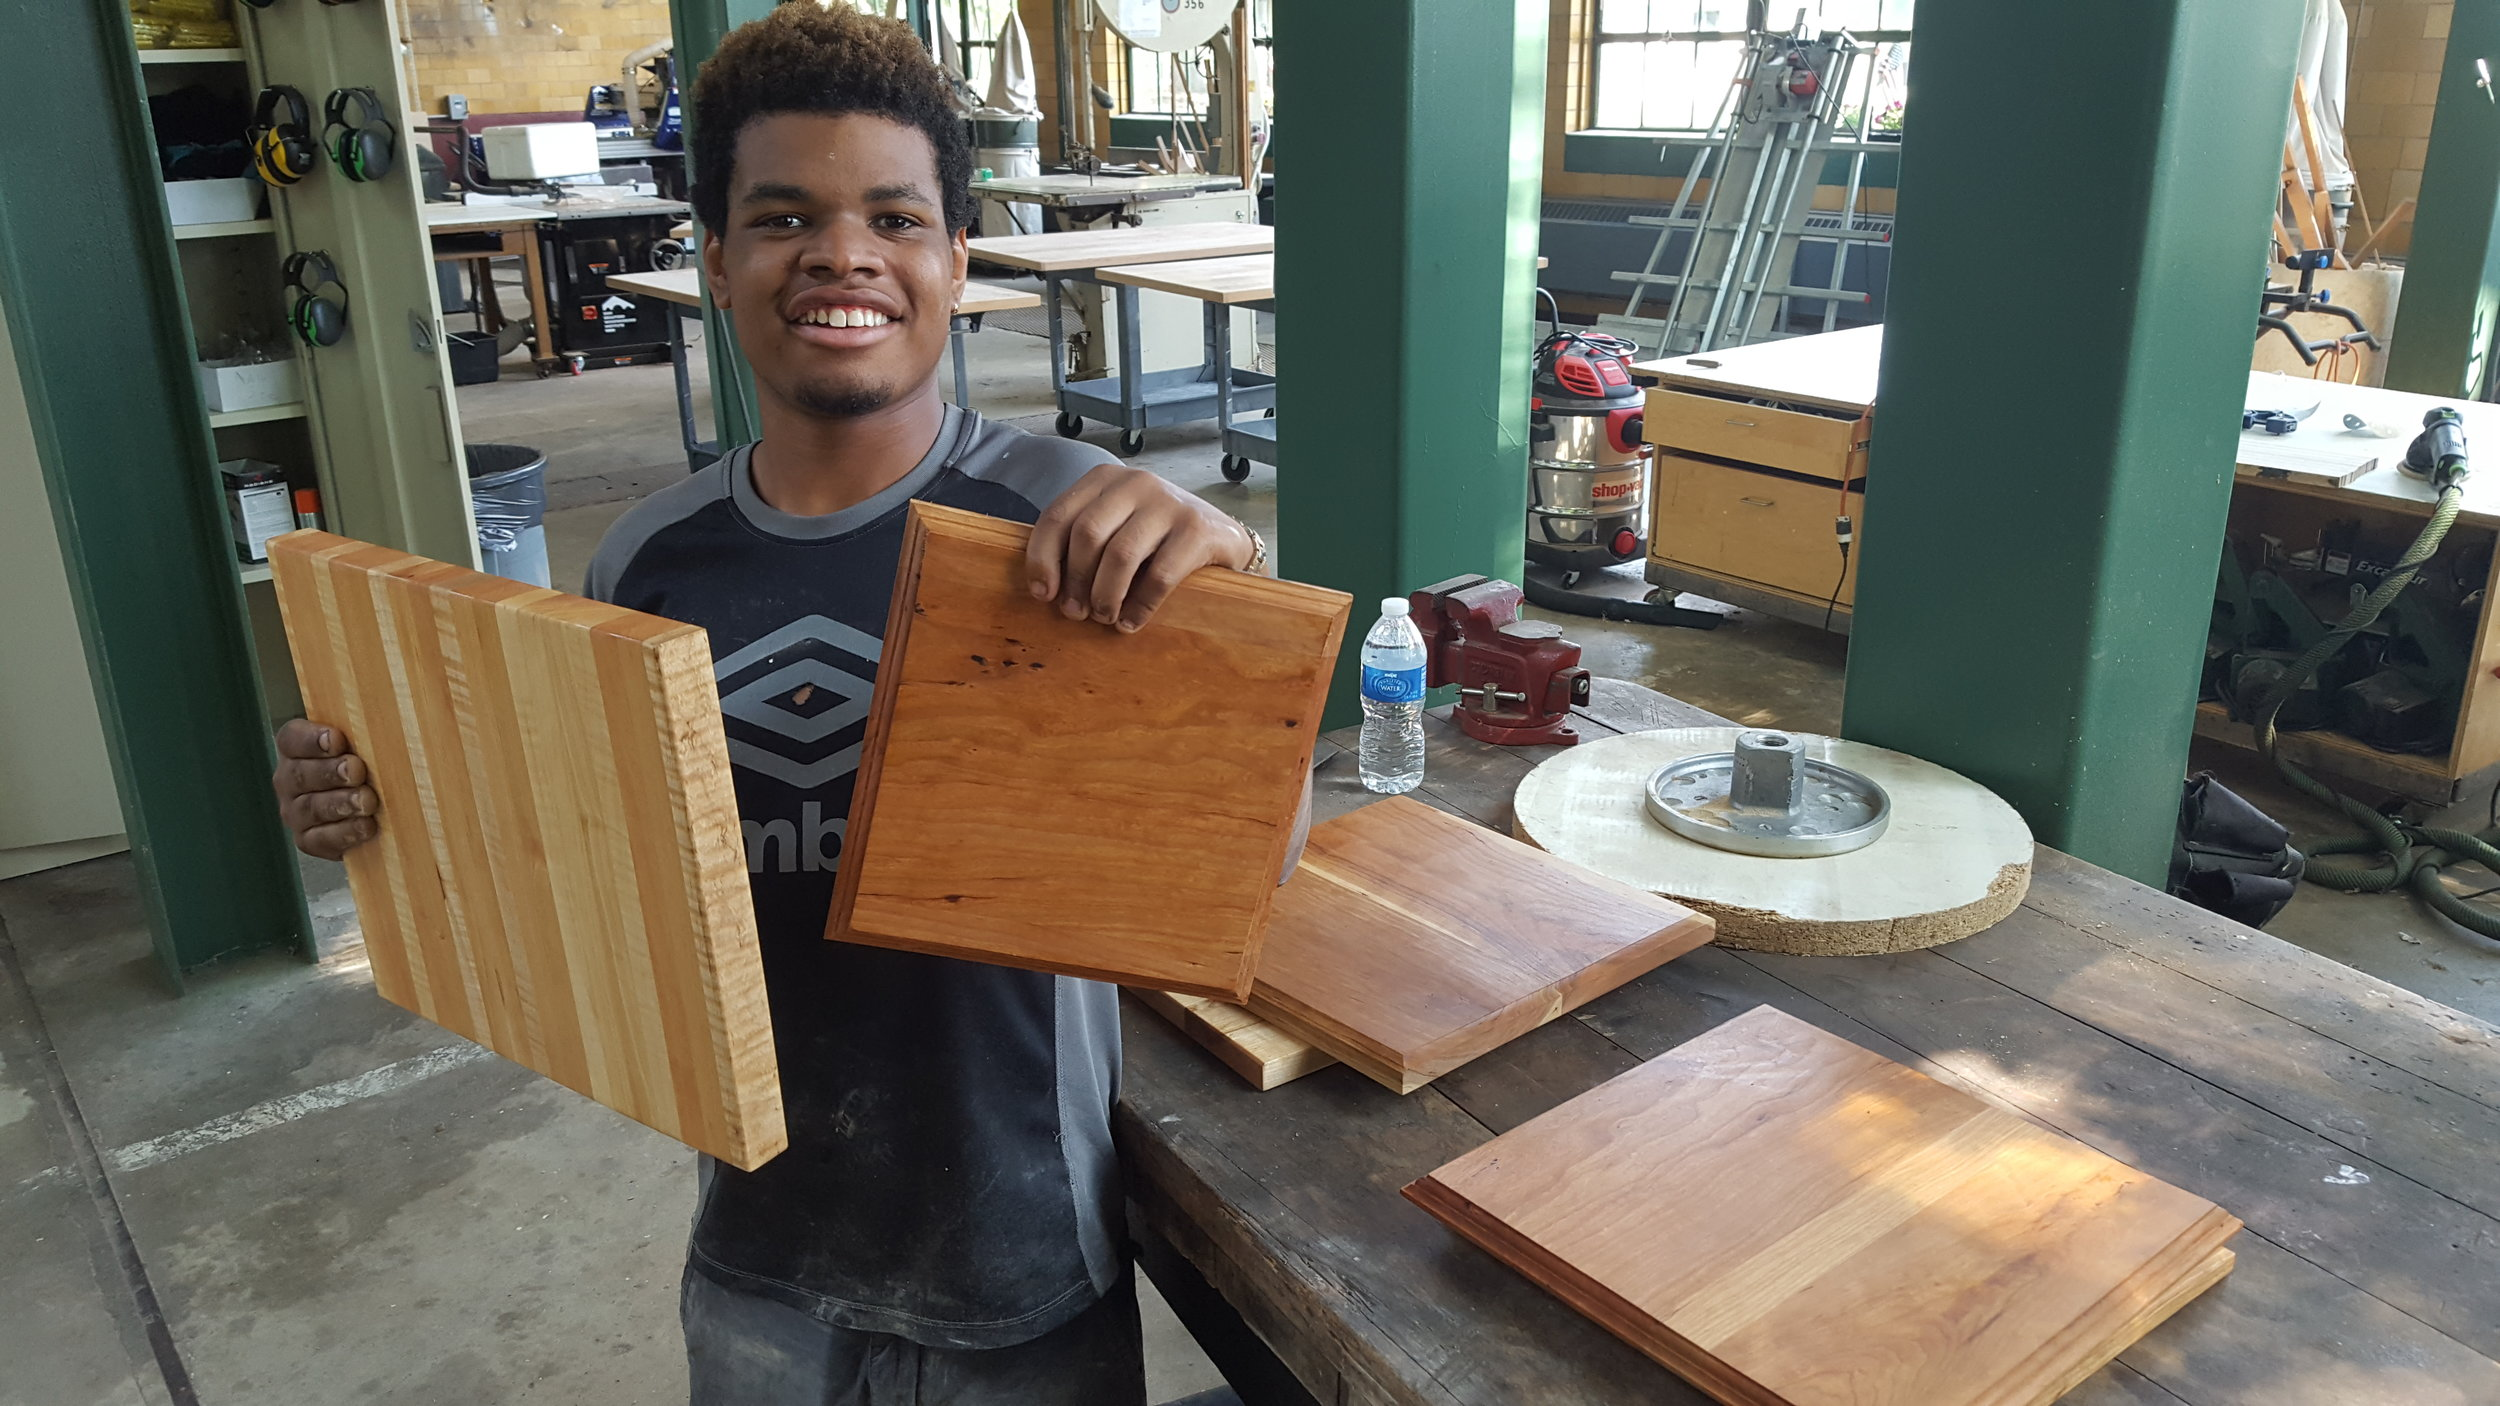 Cutting board woodworking classes - learn how to make a cutting board